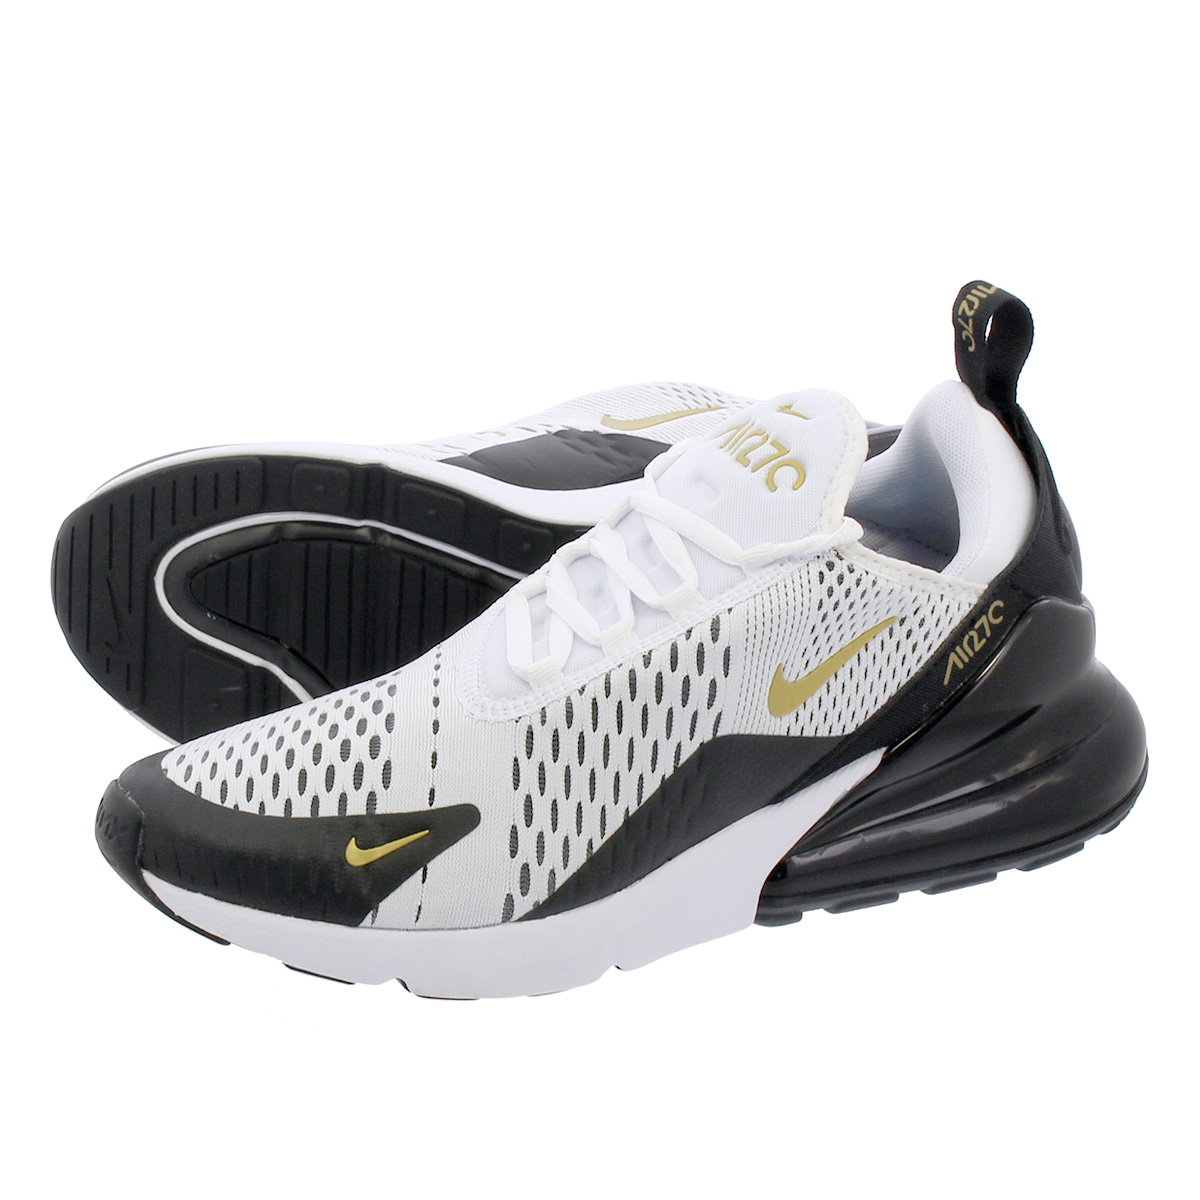 new product 21664 94128 NIKE AIR MAX 270 Kie Ney AMAX 270 WHITE/METALLIC GOLD/BLACK av7892-100